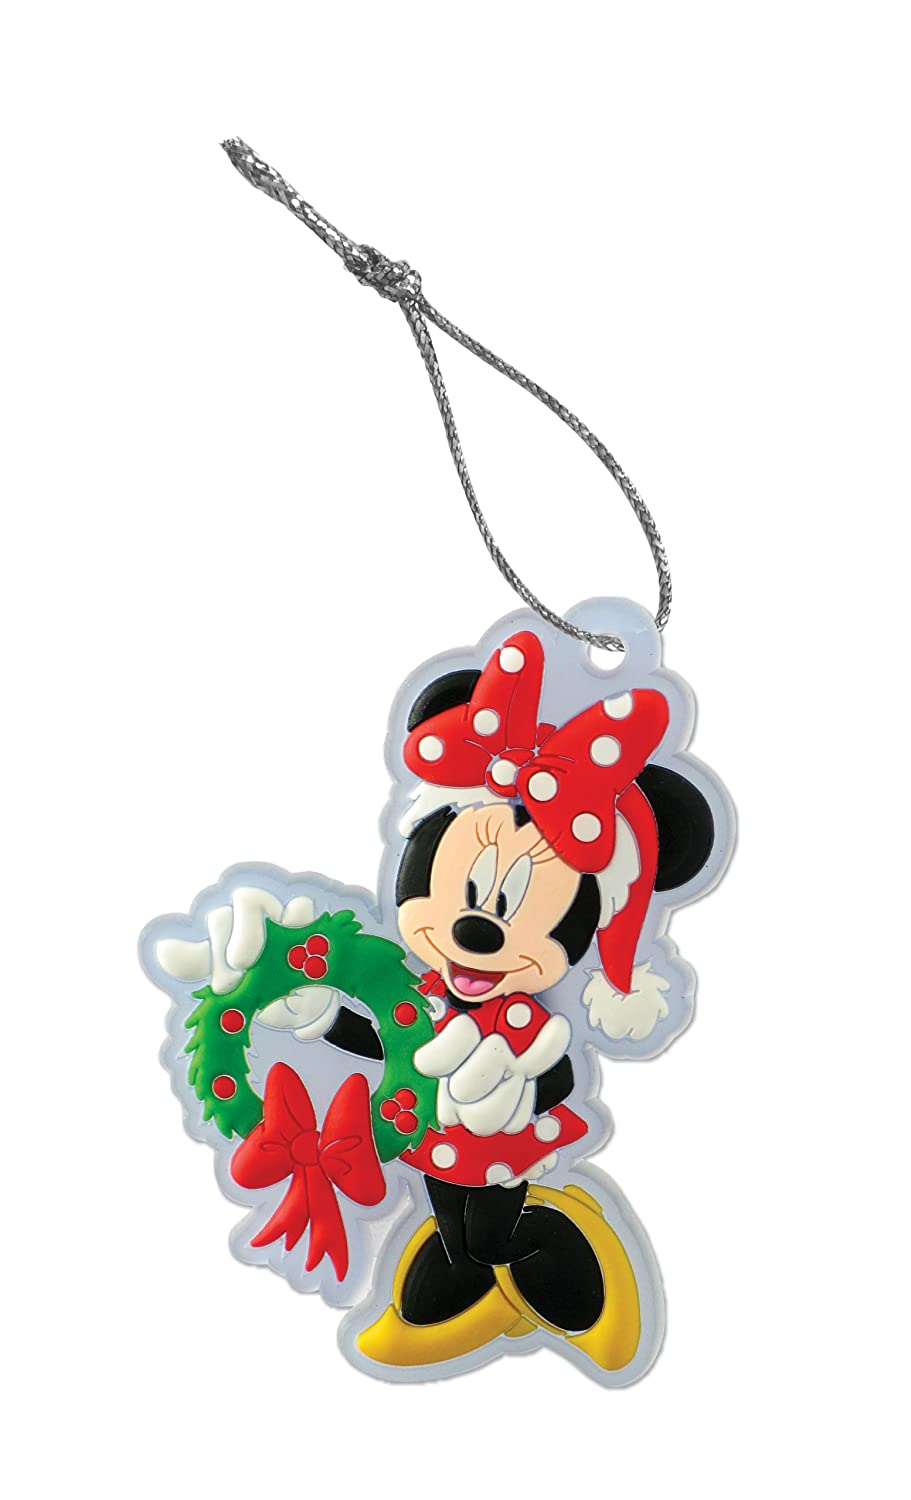 PVC Key 24882 Chain - Disney - Touch Minnie Key Mouse Wreath Soft Touch 24882 B00BSR96SQ, 魚一:6f8259c6 --- awardsame.club